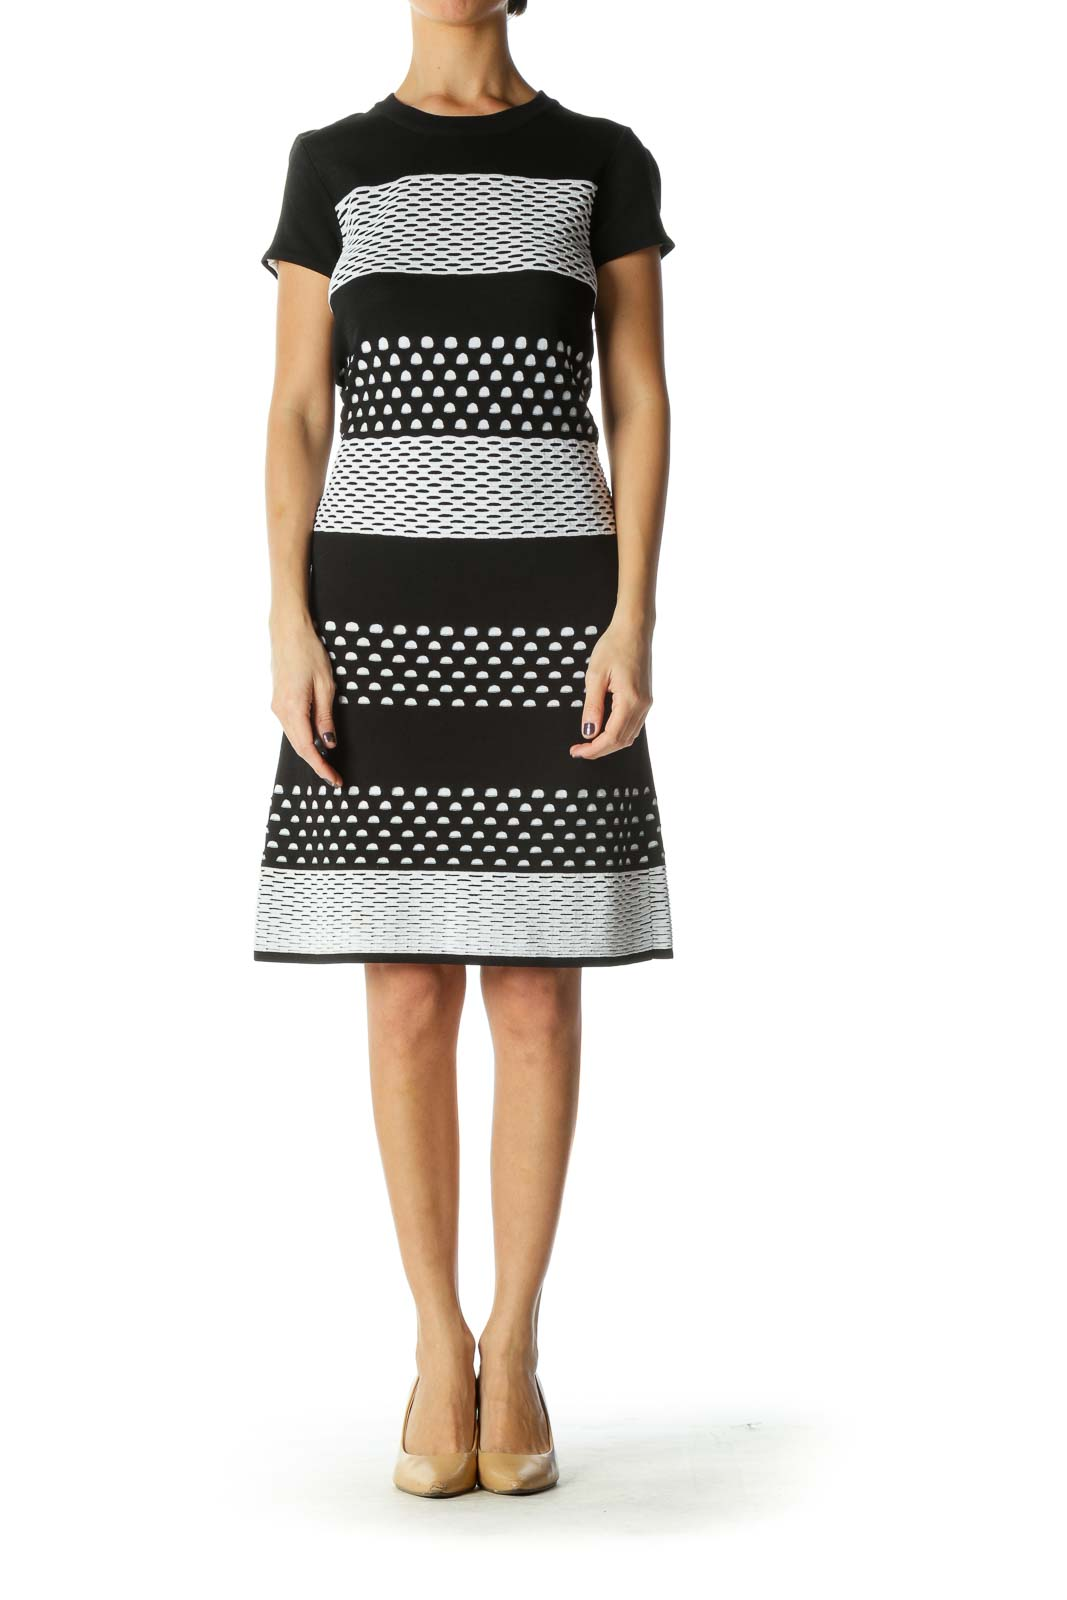 Black and White Knit Dress [S]